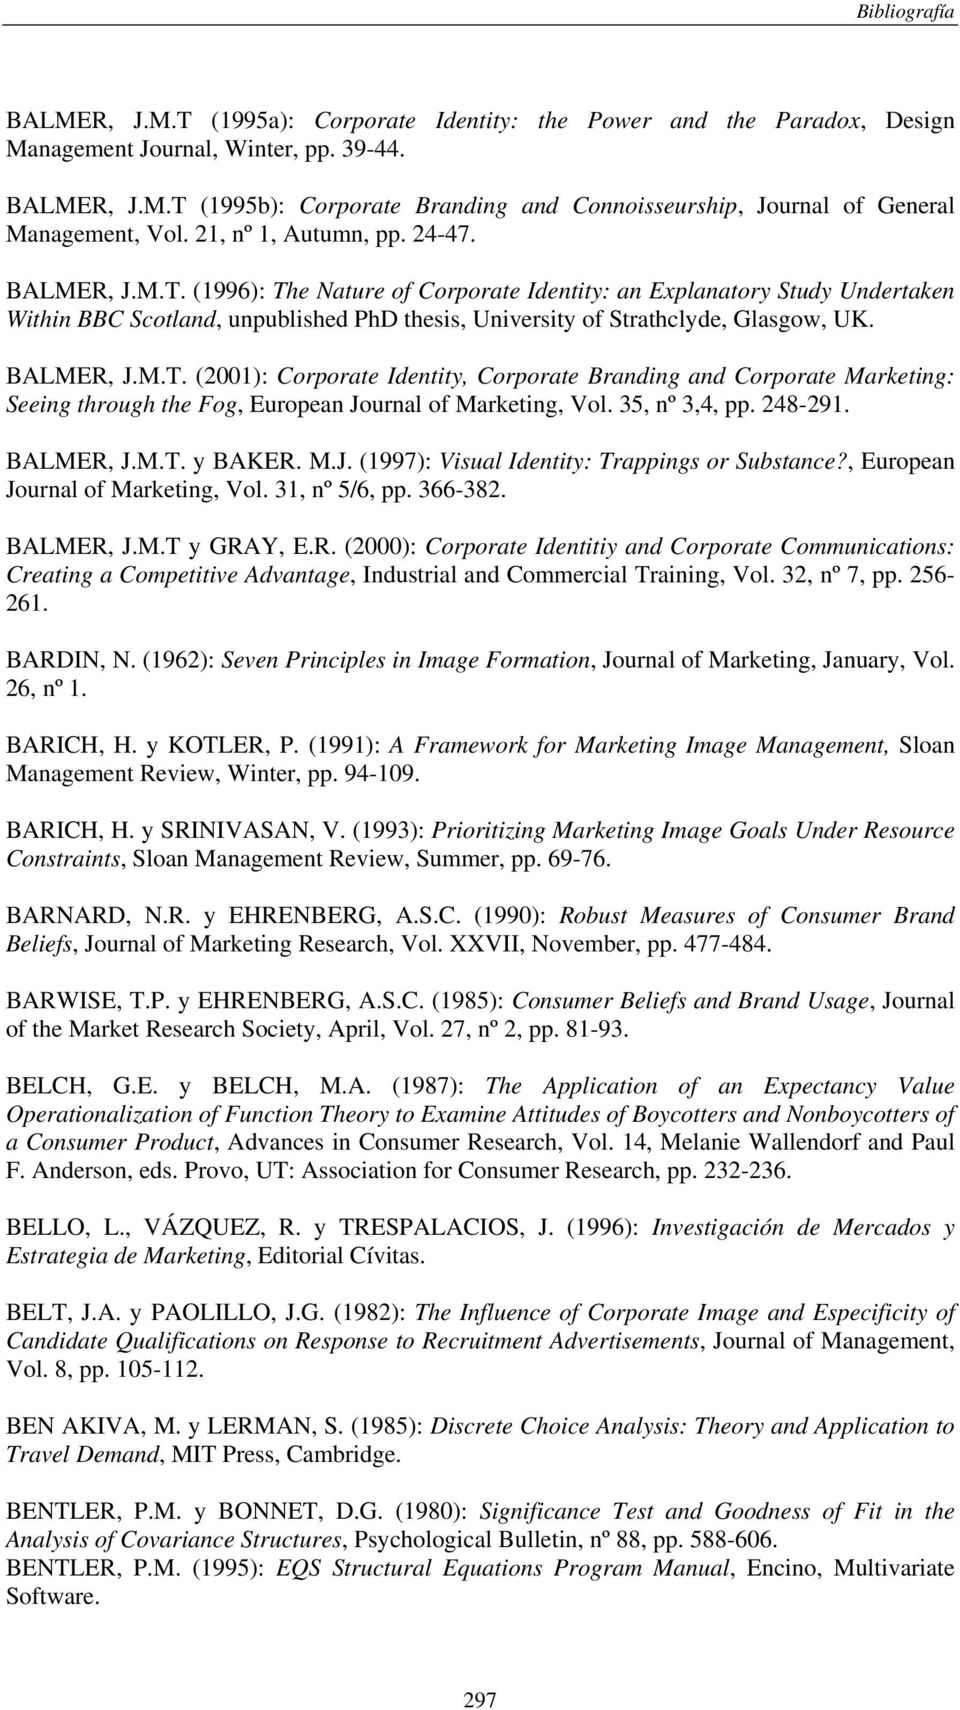 (1996): The Nature of Corporate Identity: an Explanatory Study Undertaken Within BBC Scotland, unpublished PhD thesis, University of Strathclyde, Glasgow, UK. BALMER, J.M.T. (2001): Corporate Identity, Corporate Branding and Corporate Marketing: Seeing through the Fog, European Journal of Marketing, Vol.